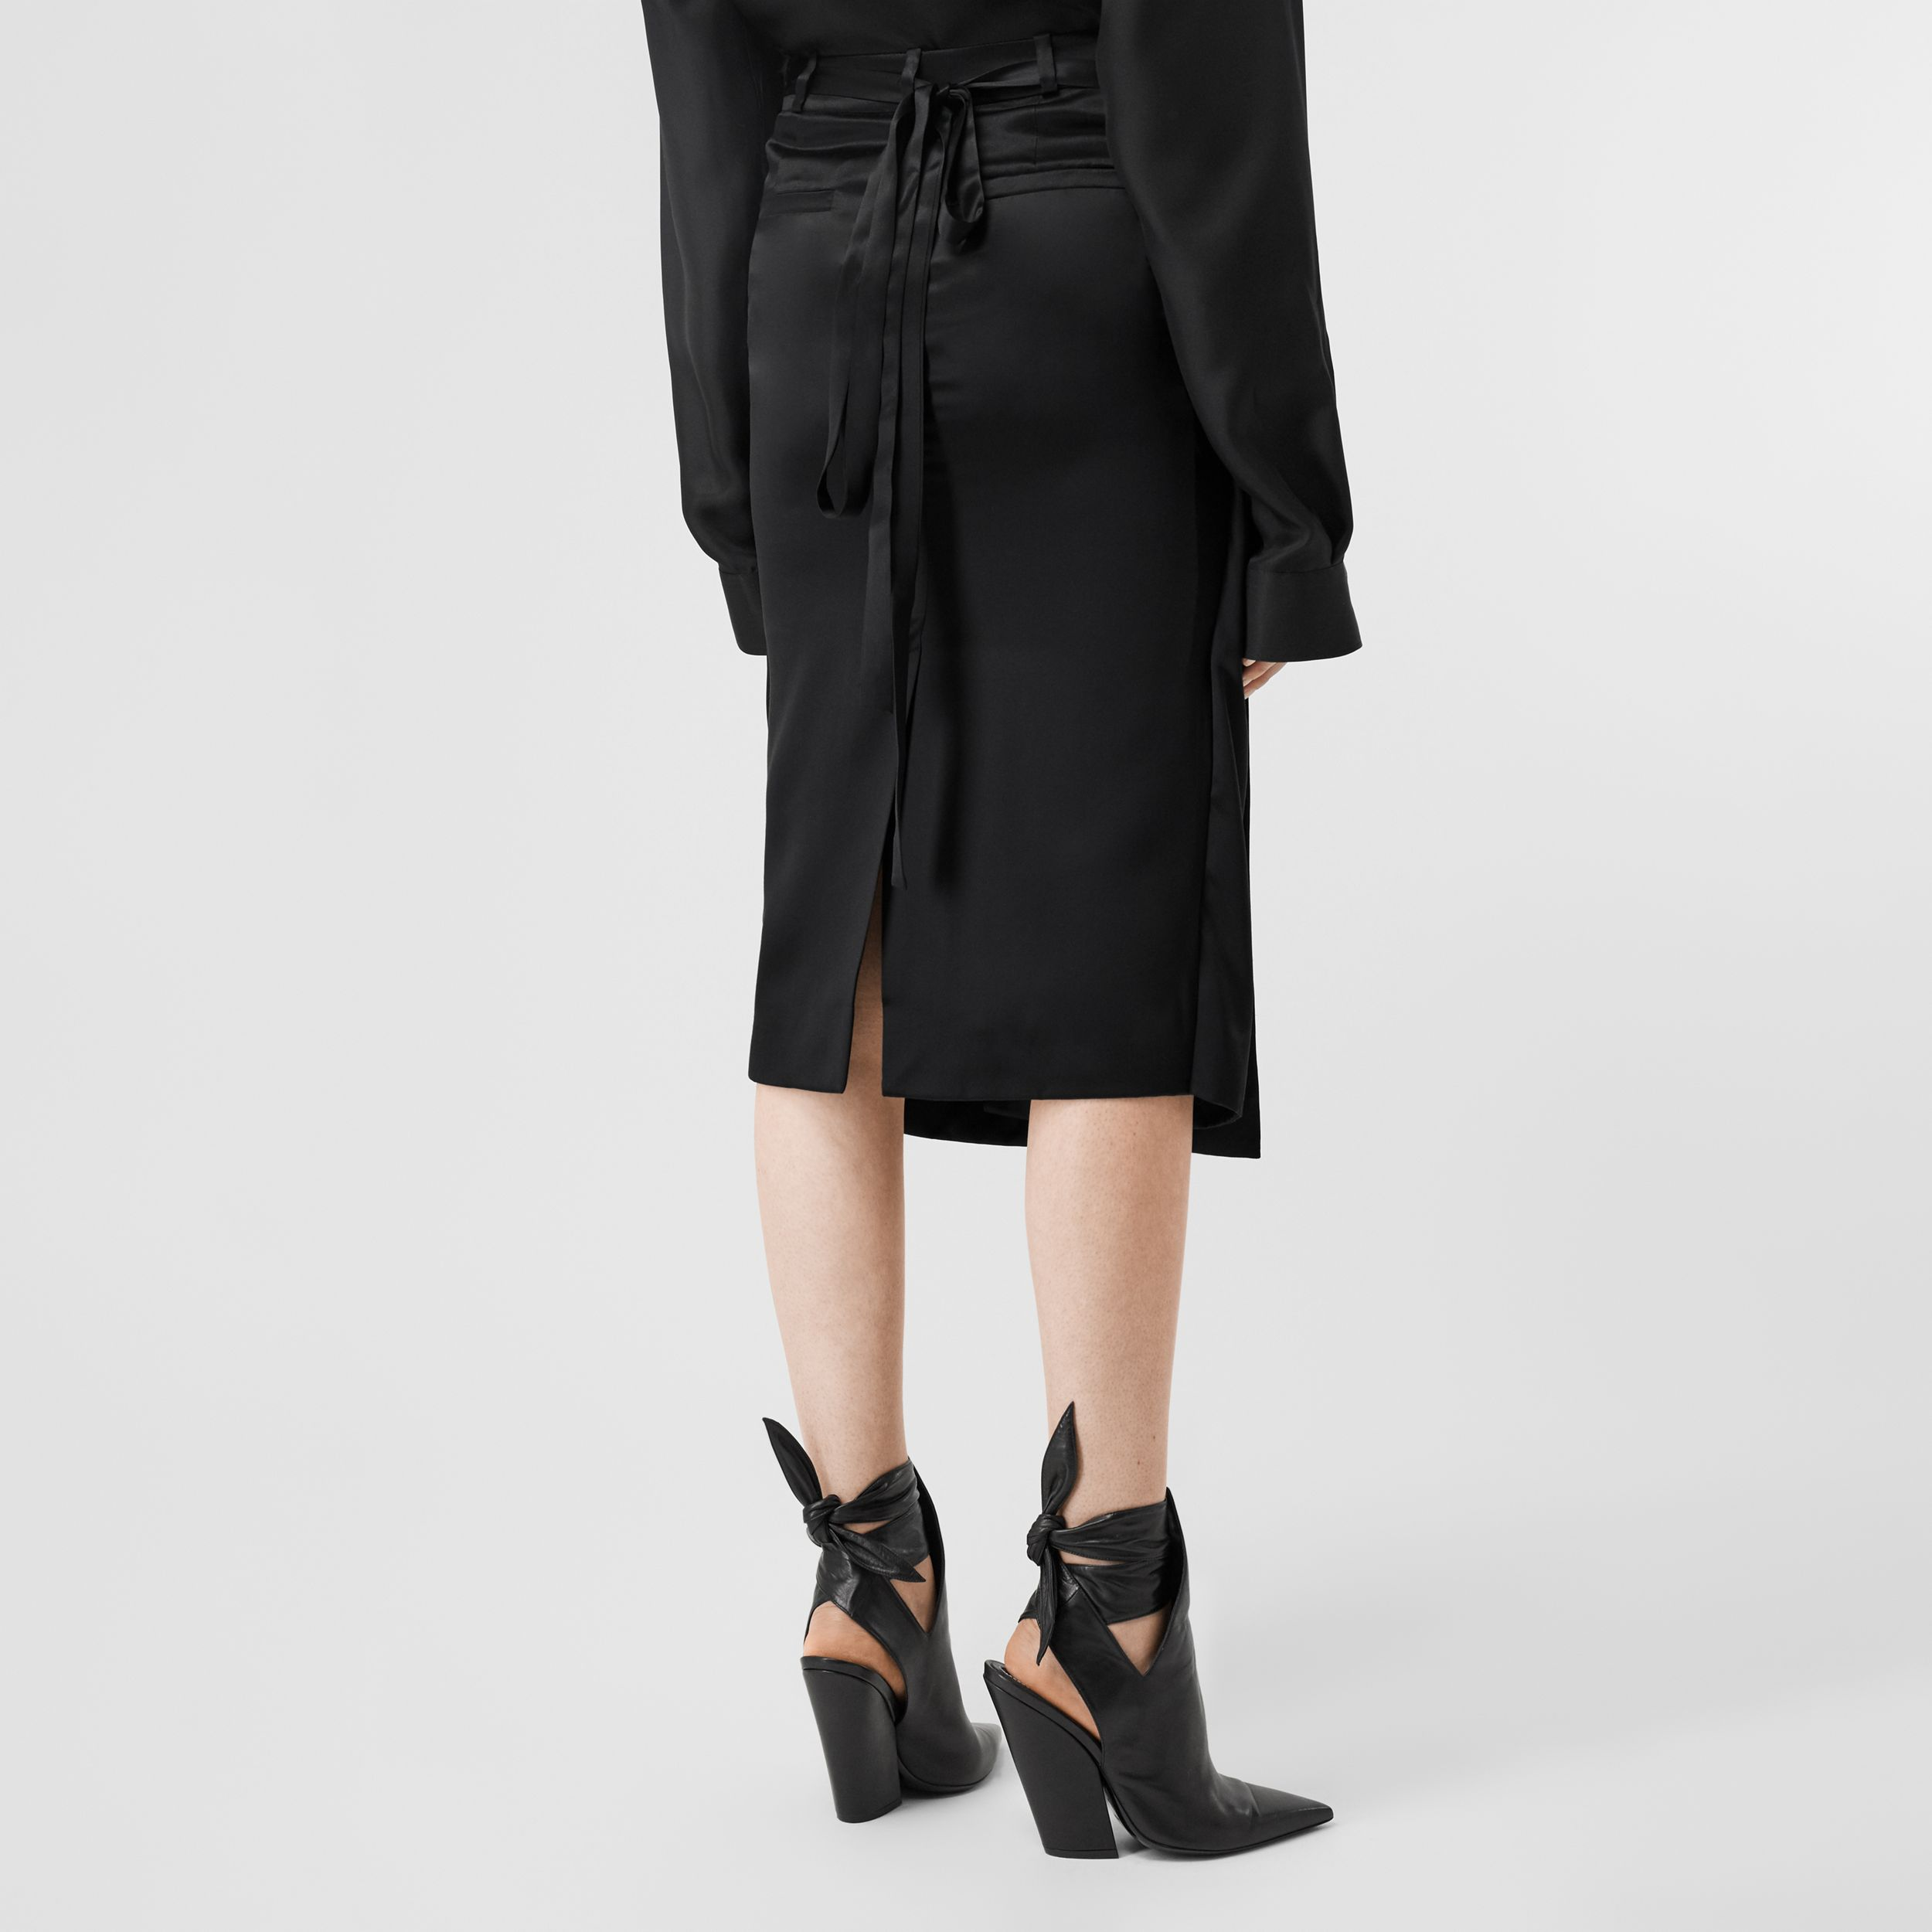 Silk Satin Foldover Skirt in Black - Women | Burberry - 2